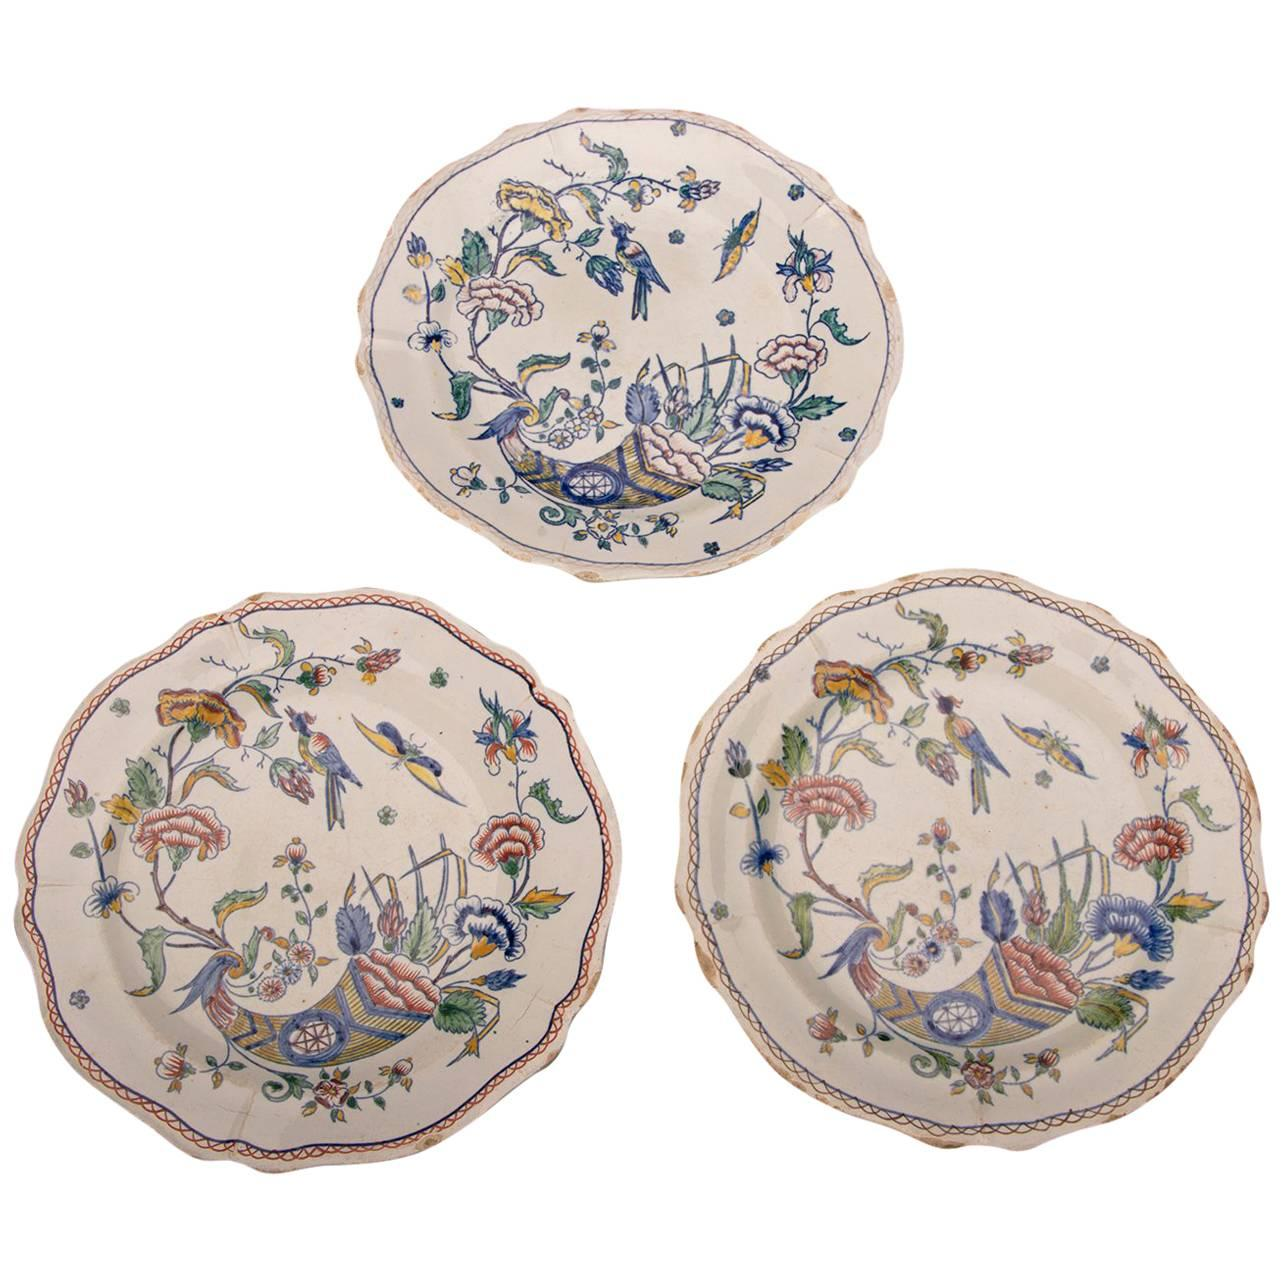 Three Antique French Gien Hand-Painted with Scallop Edge Plates circa 1860 For Sale  sc 1 st  1stDibs & Three Antique French Gien Hand-Painted with Scallop Edge Plates ...